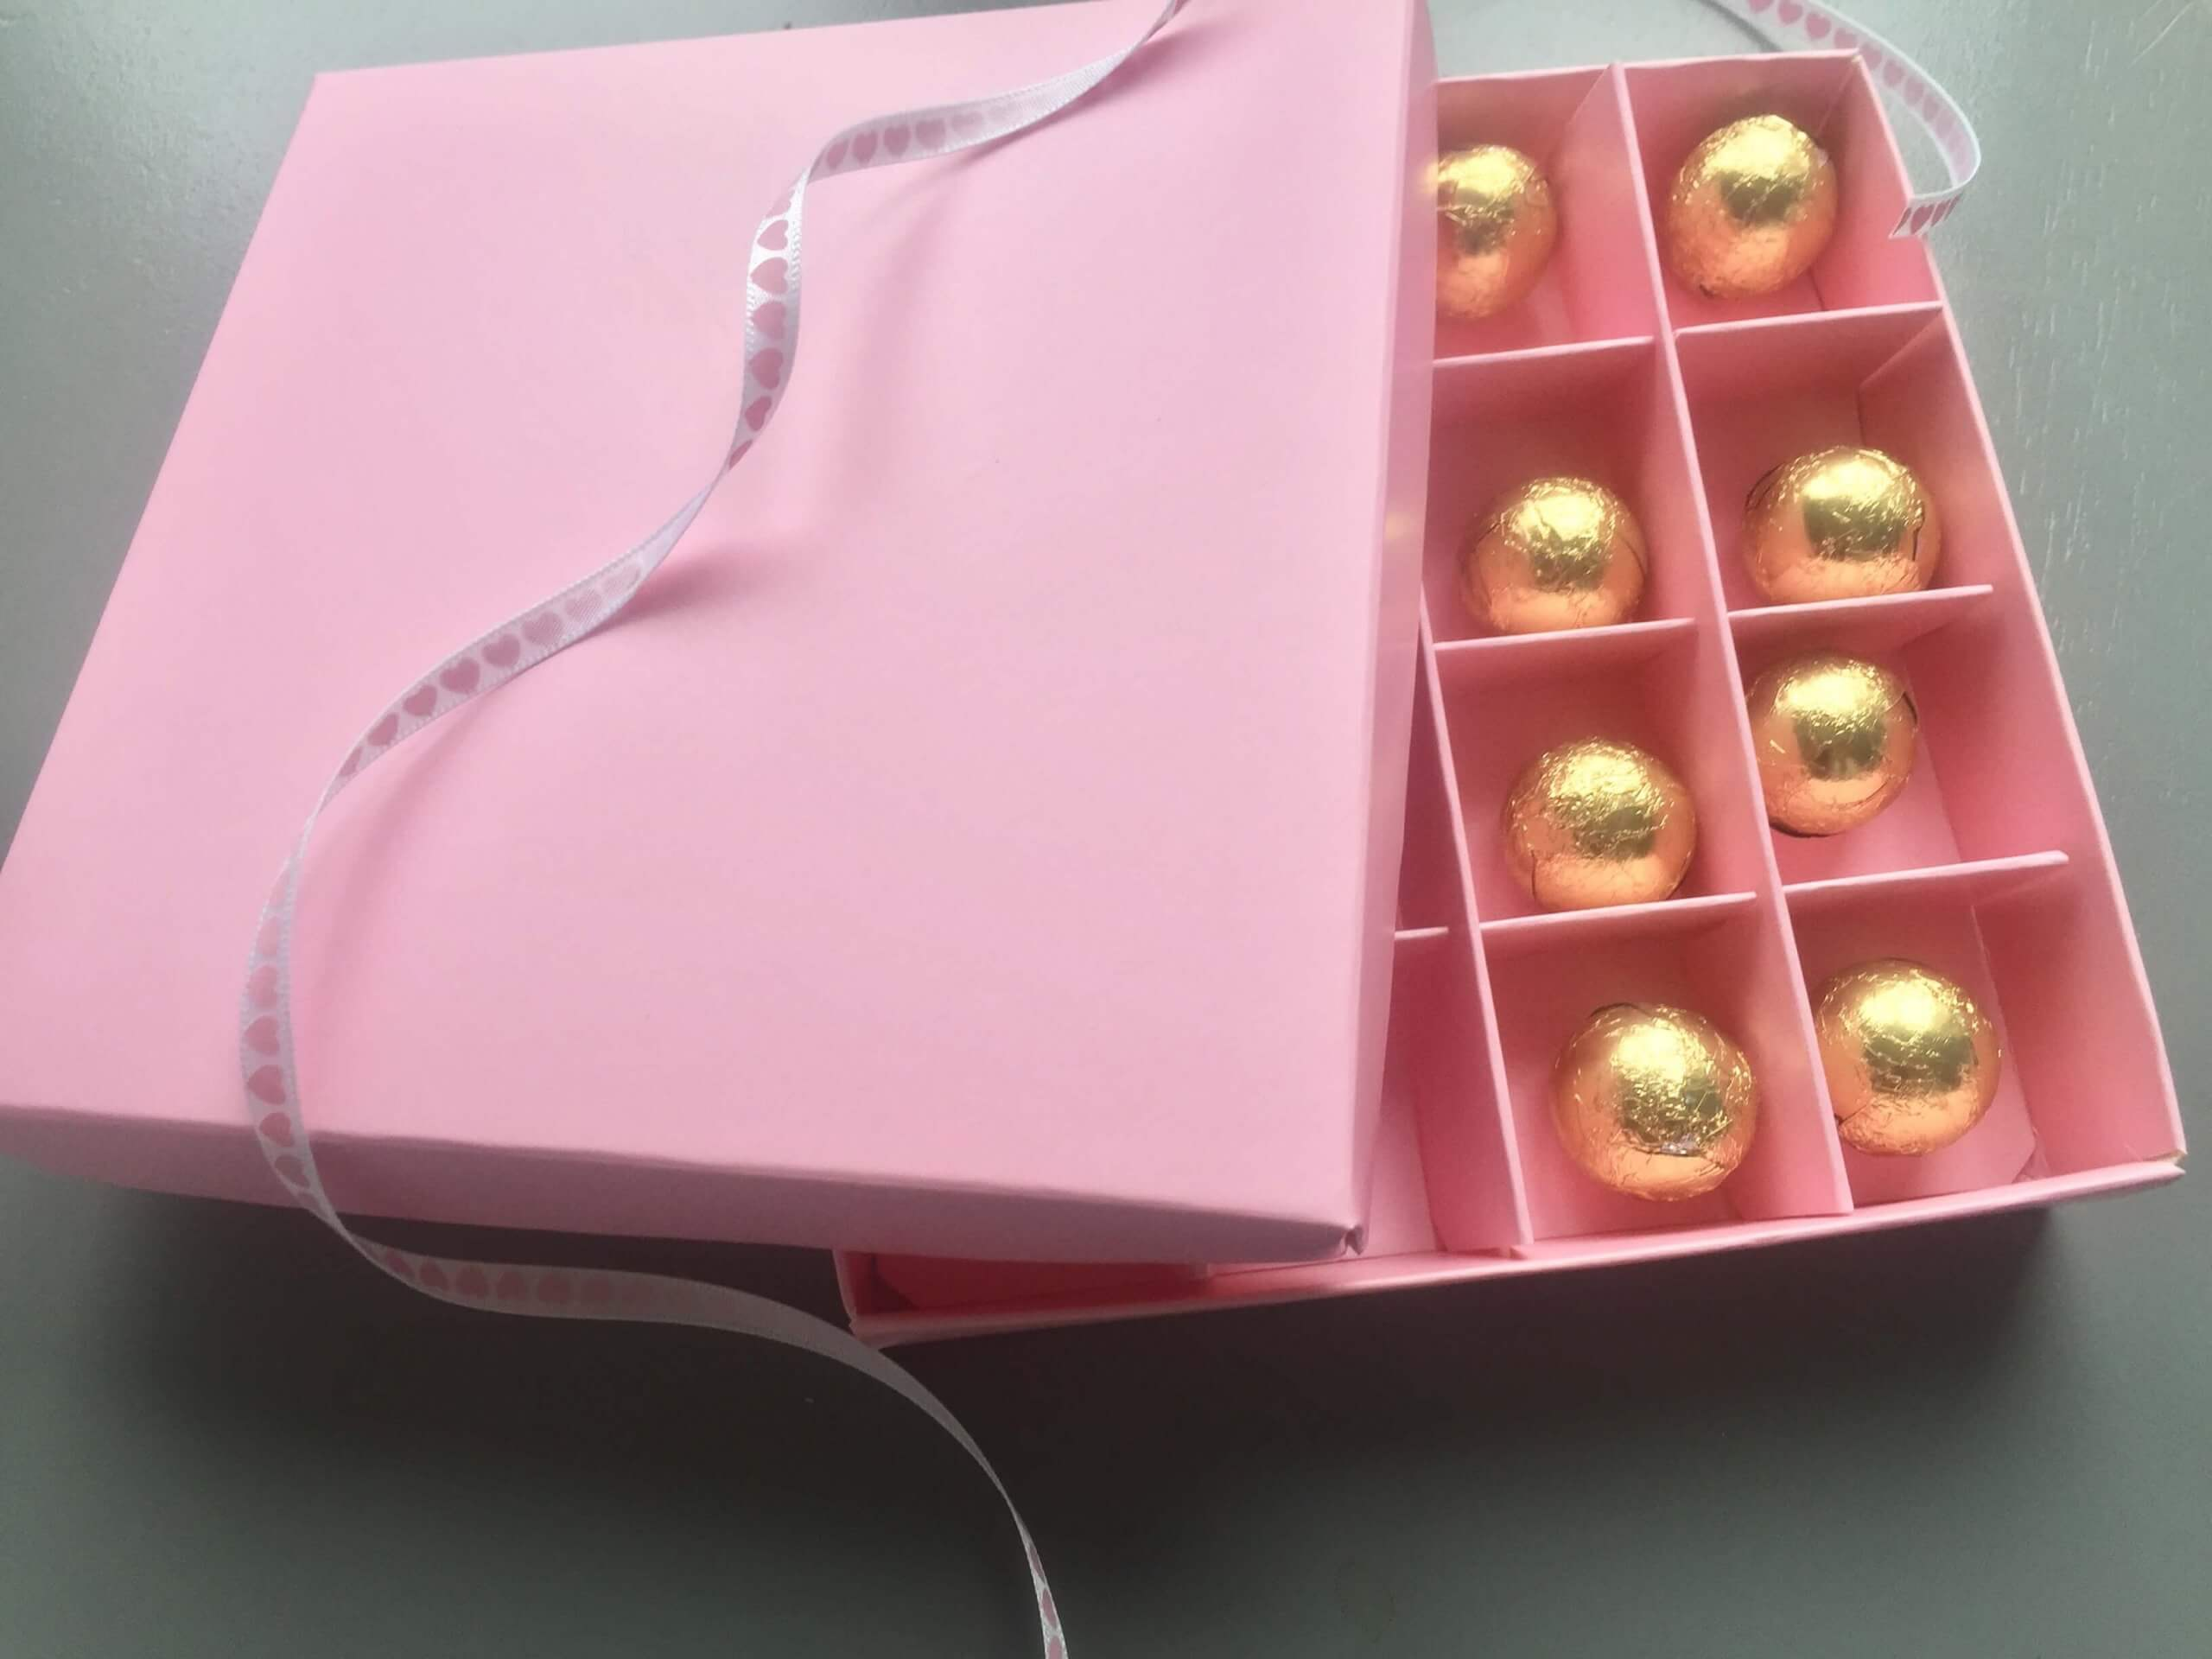 16 Pack Confectionary / Wax Melts Box in Pink with Pink Inserts